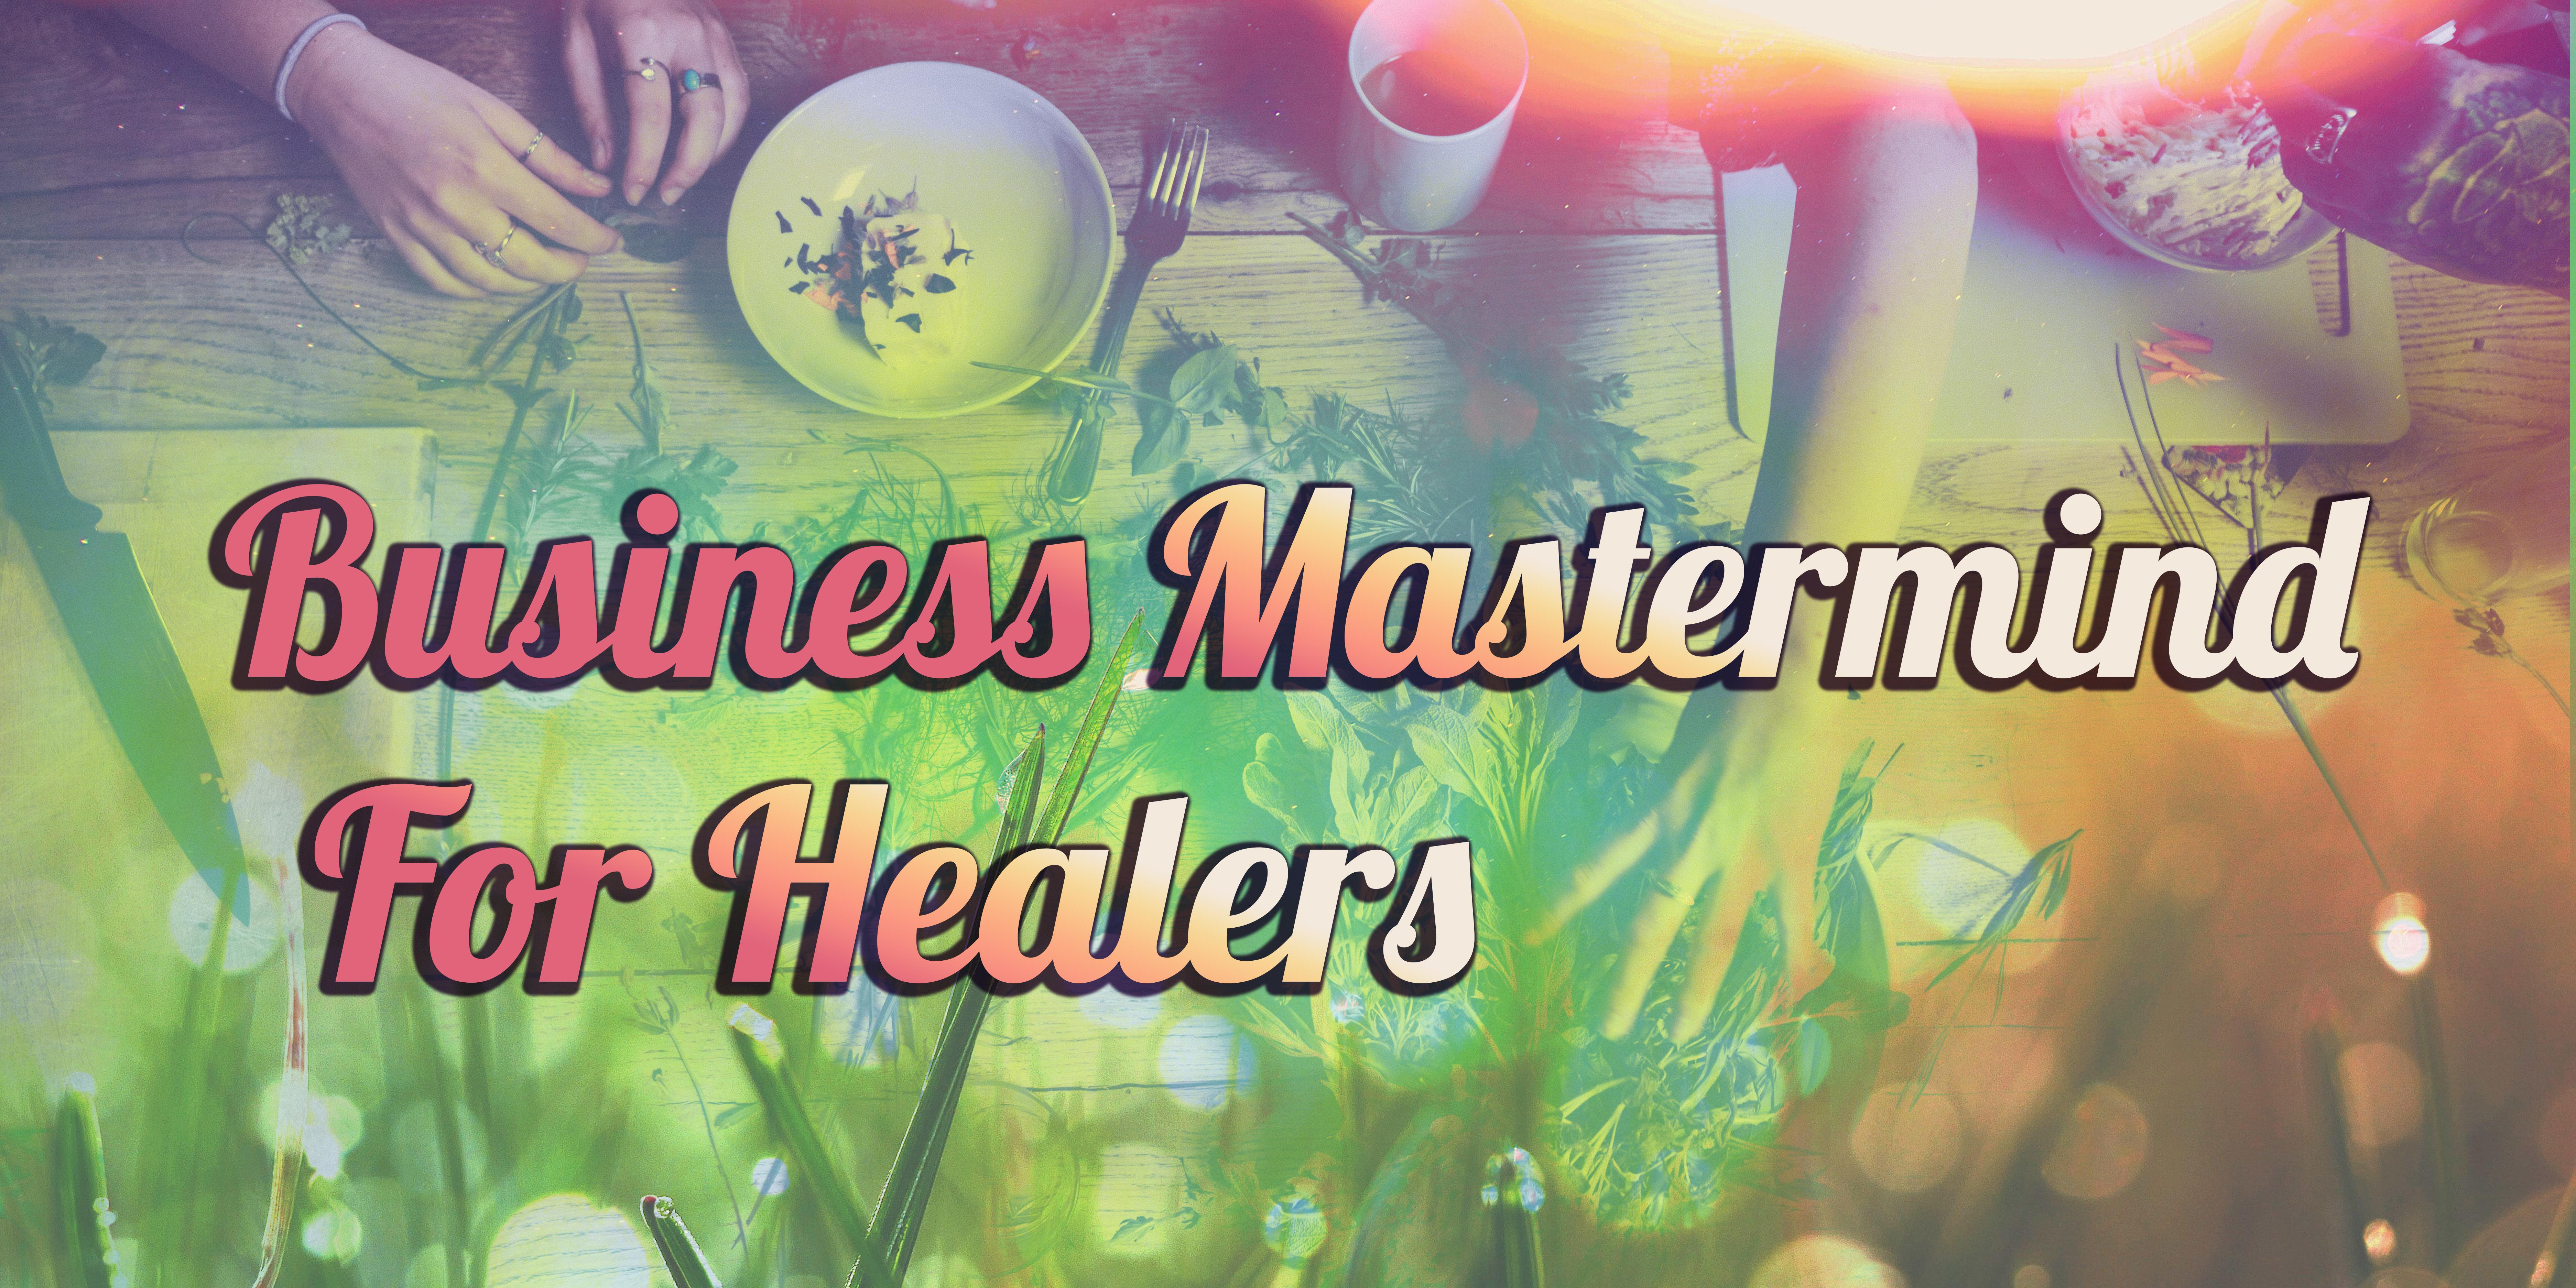 Business Mastermind for Healers